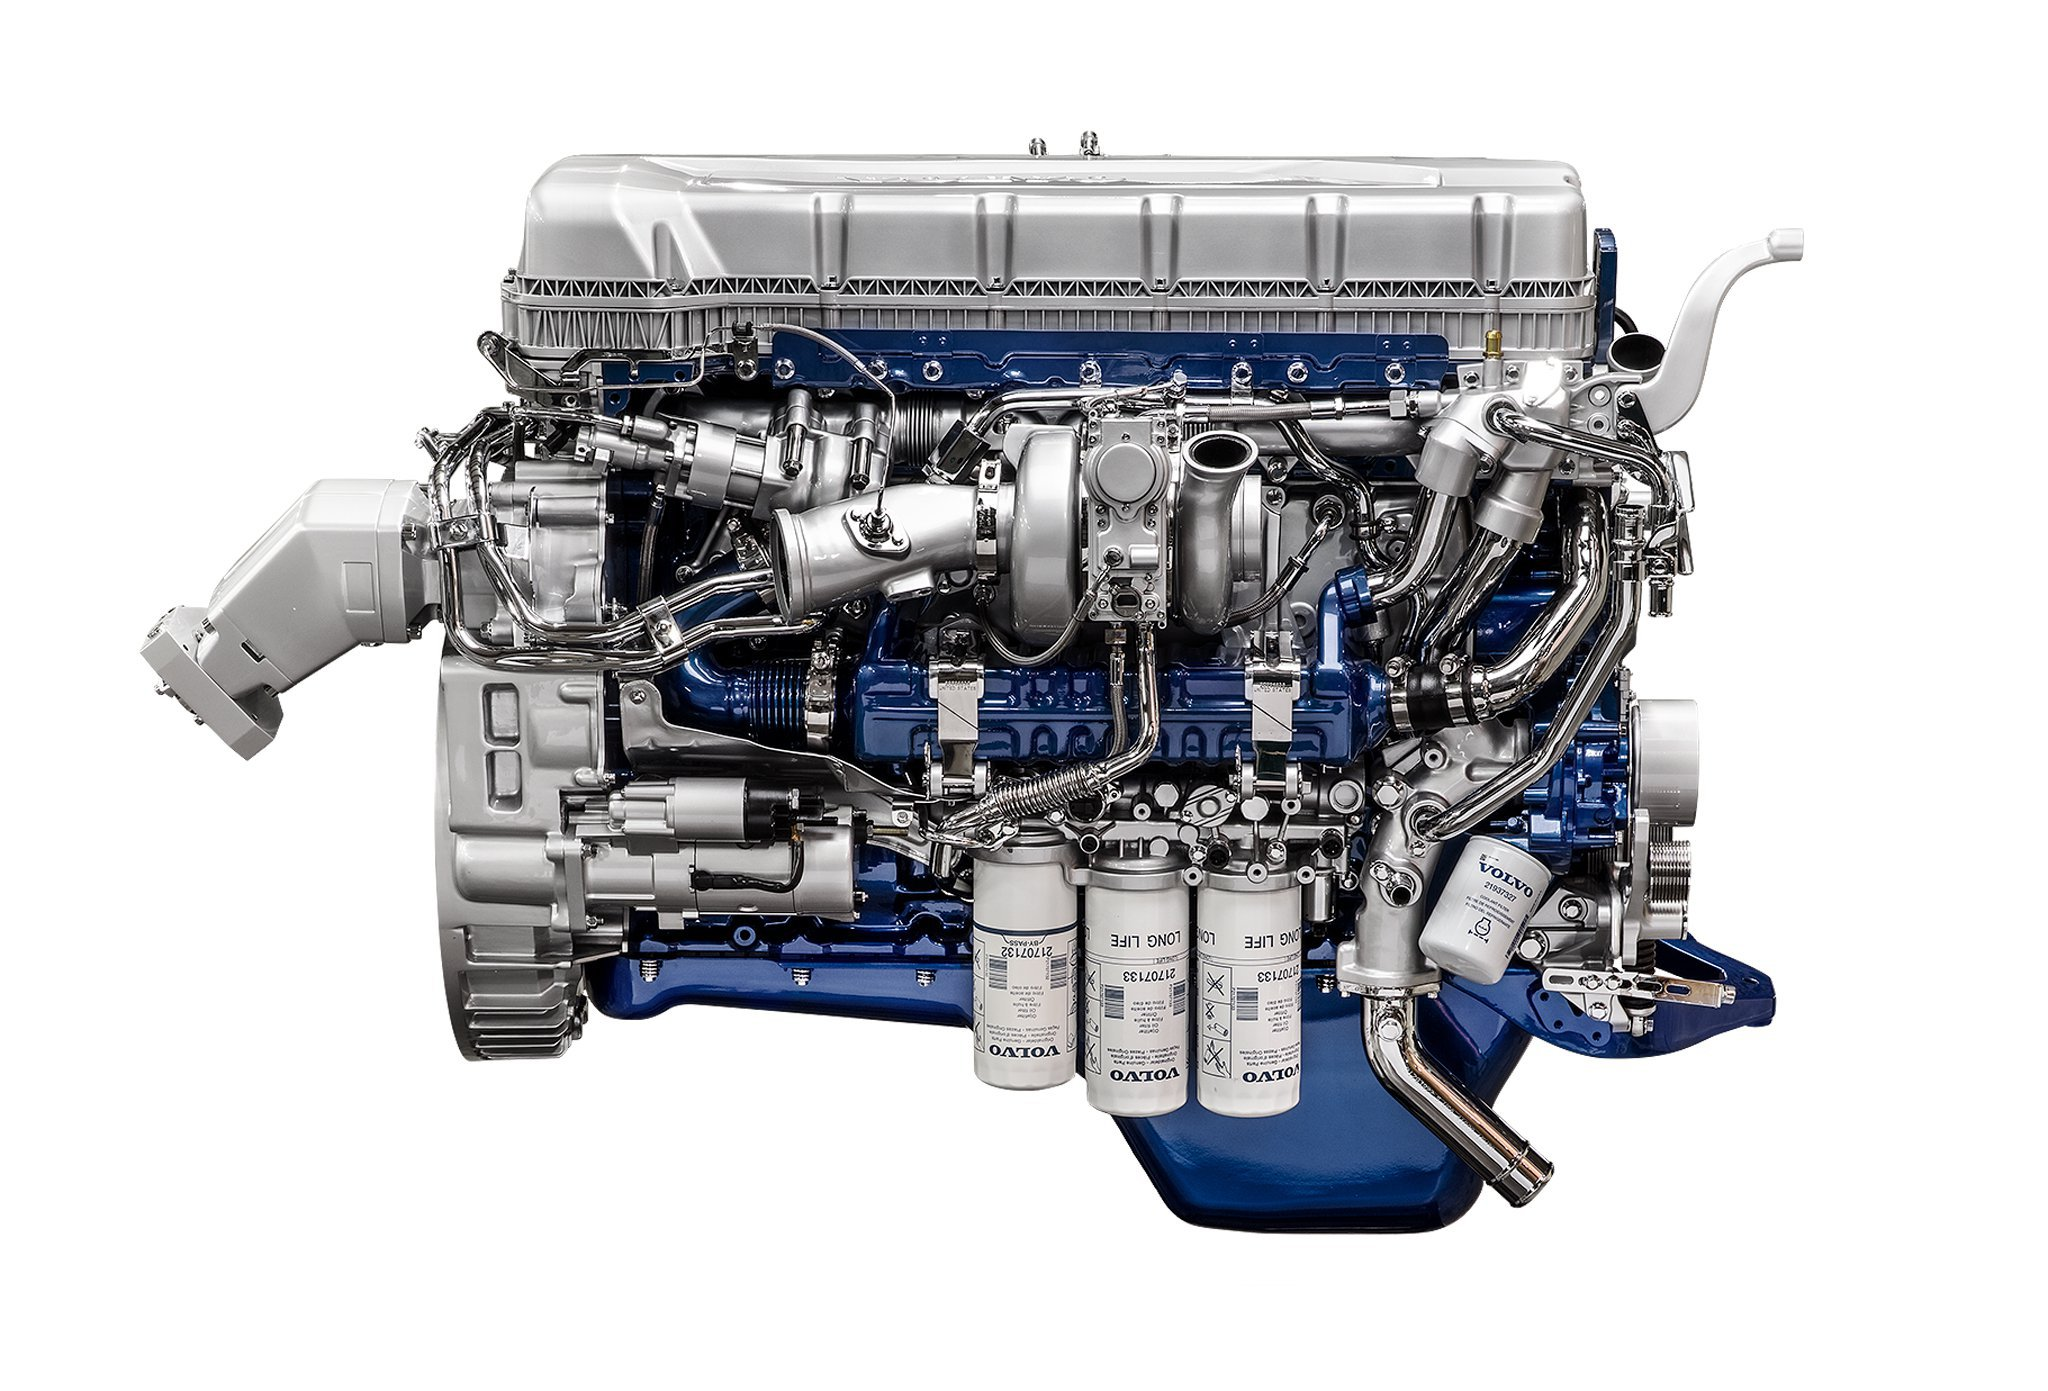 D11 Engine | The flyweight that performs like a heavyweight